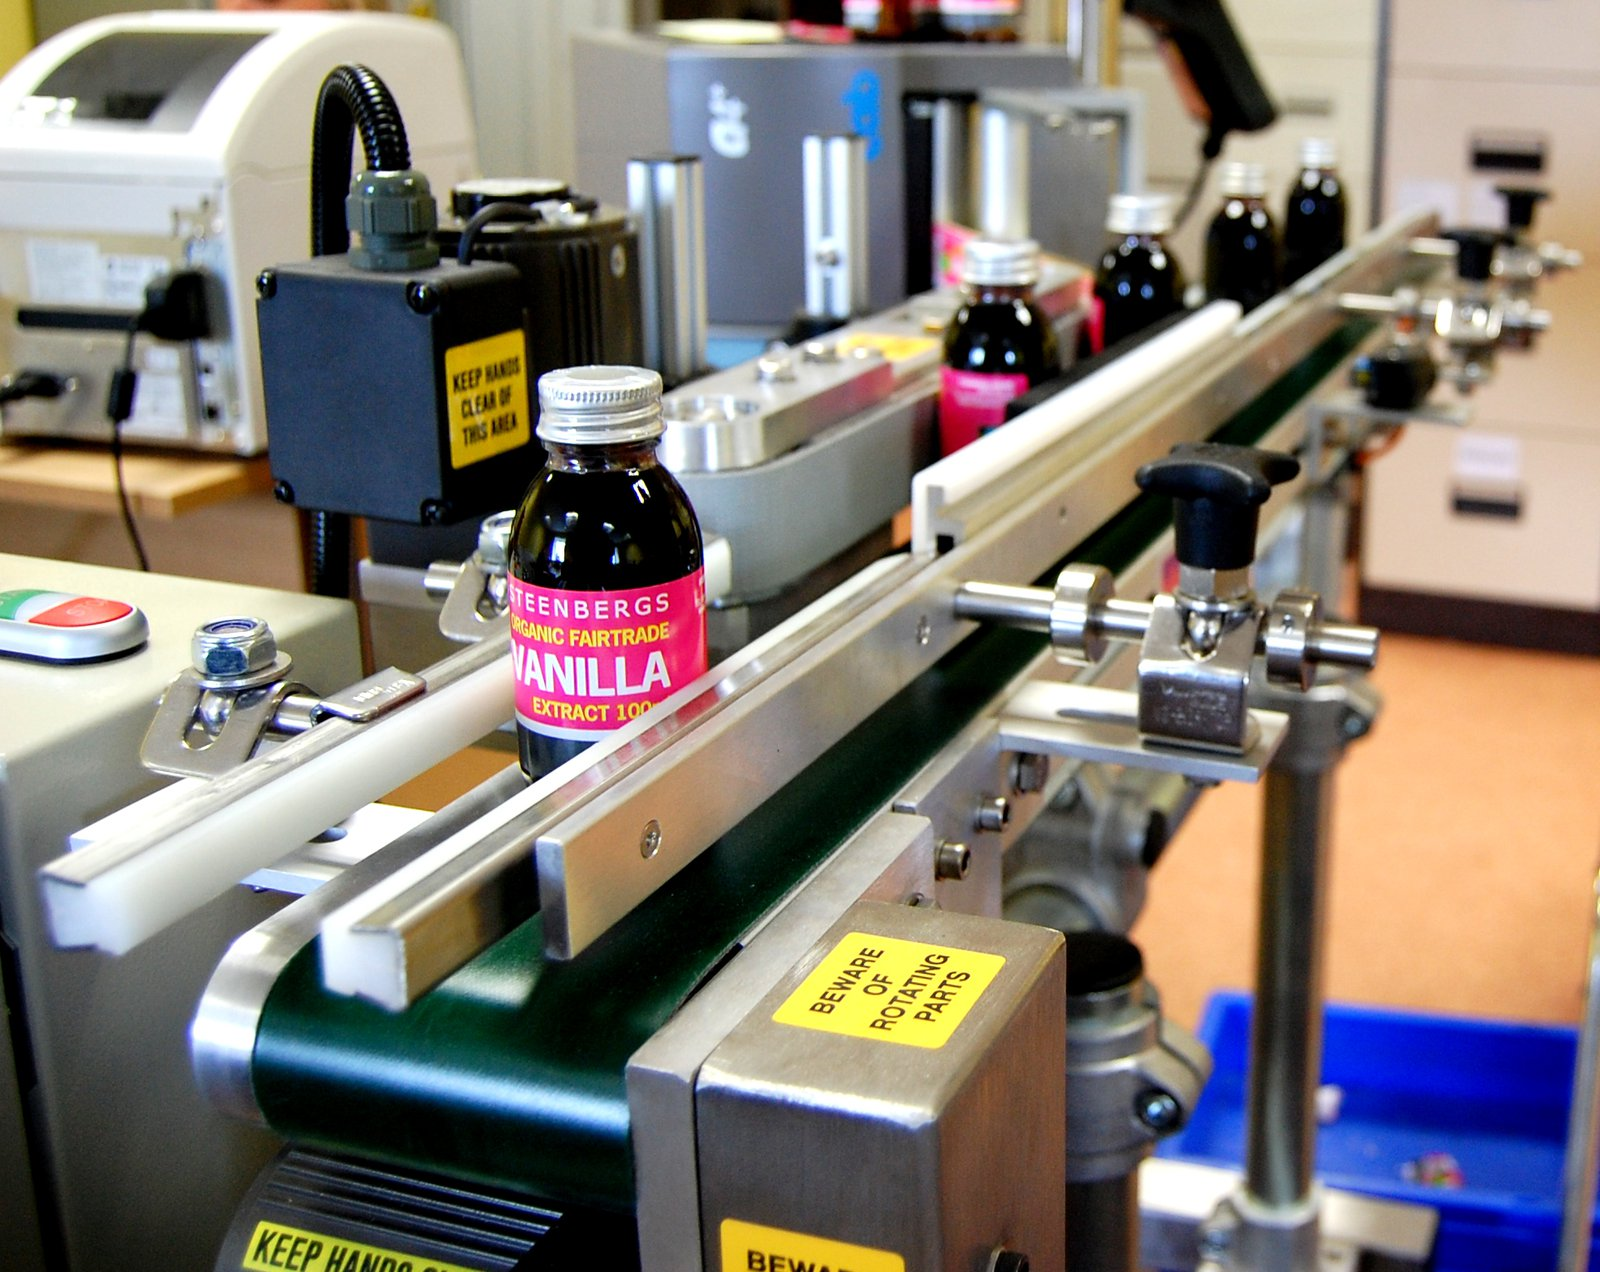 Steenbergs labelling machine the first machine to help us.